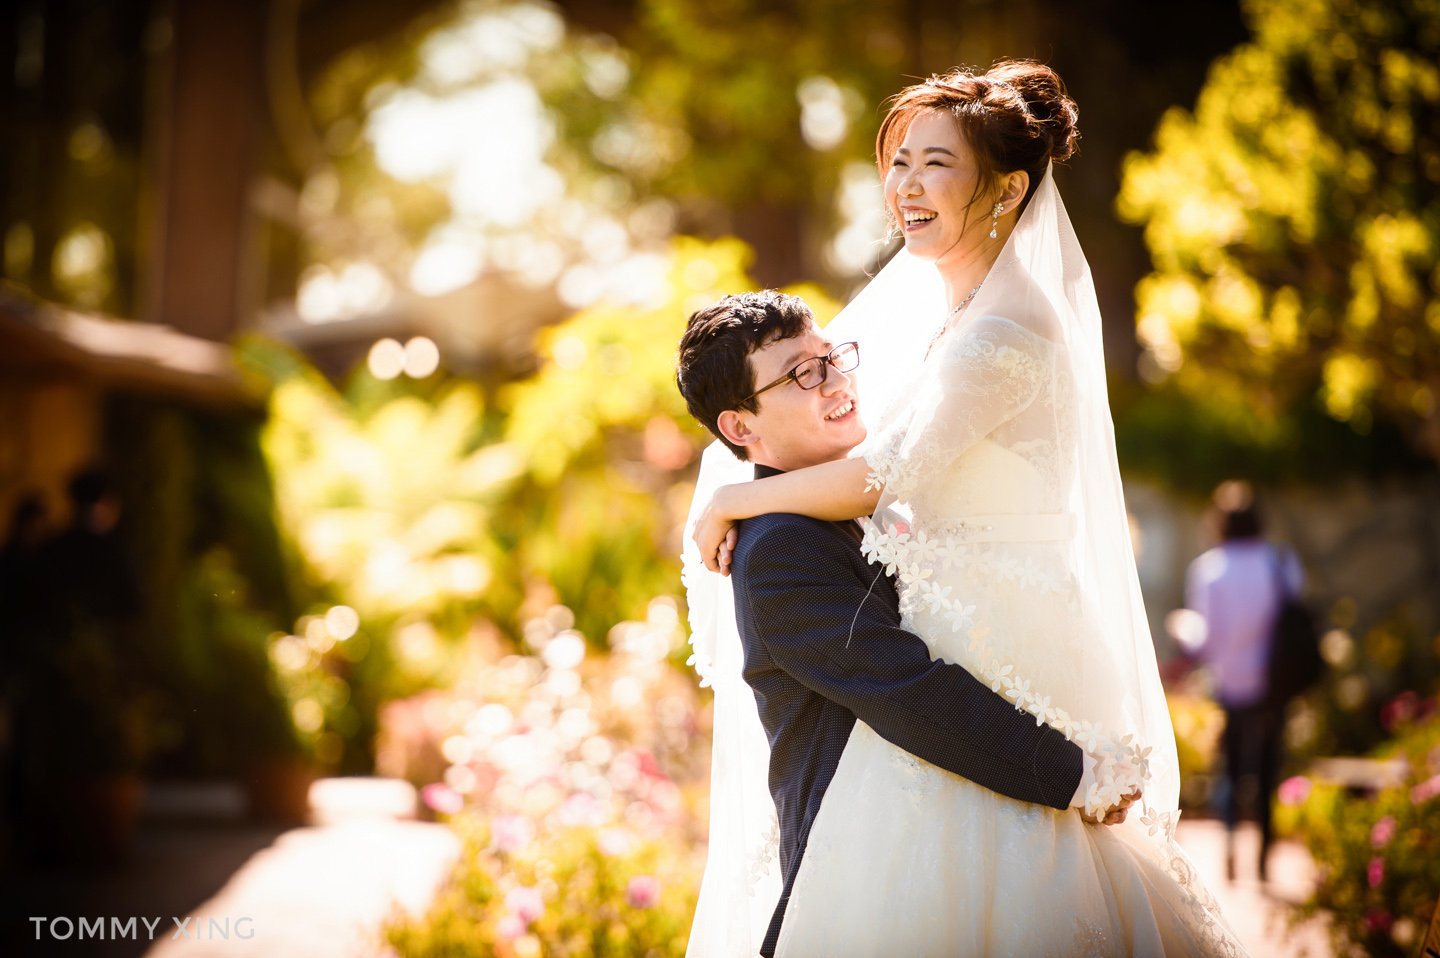 Los Angeles Wedding Photographer 洛杉矶婚礼婚纱摄影师 Tommy Xing-83.JPG